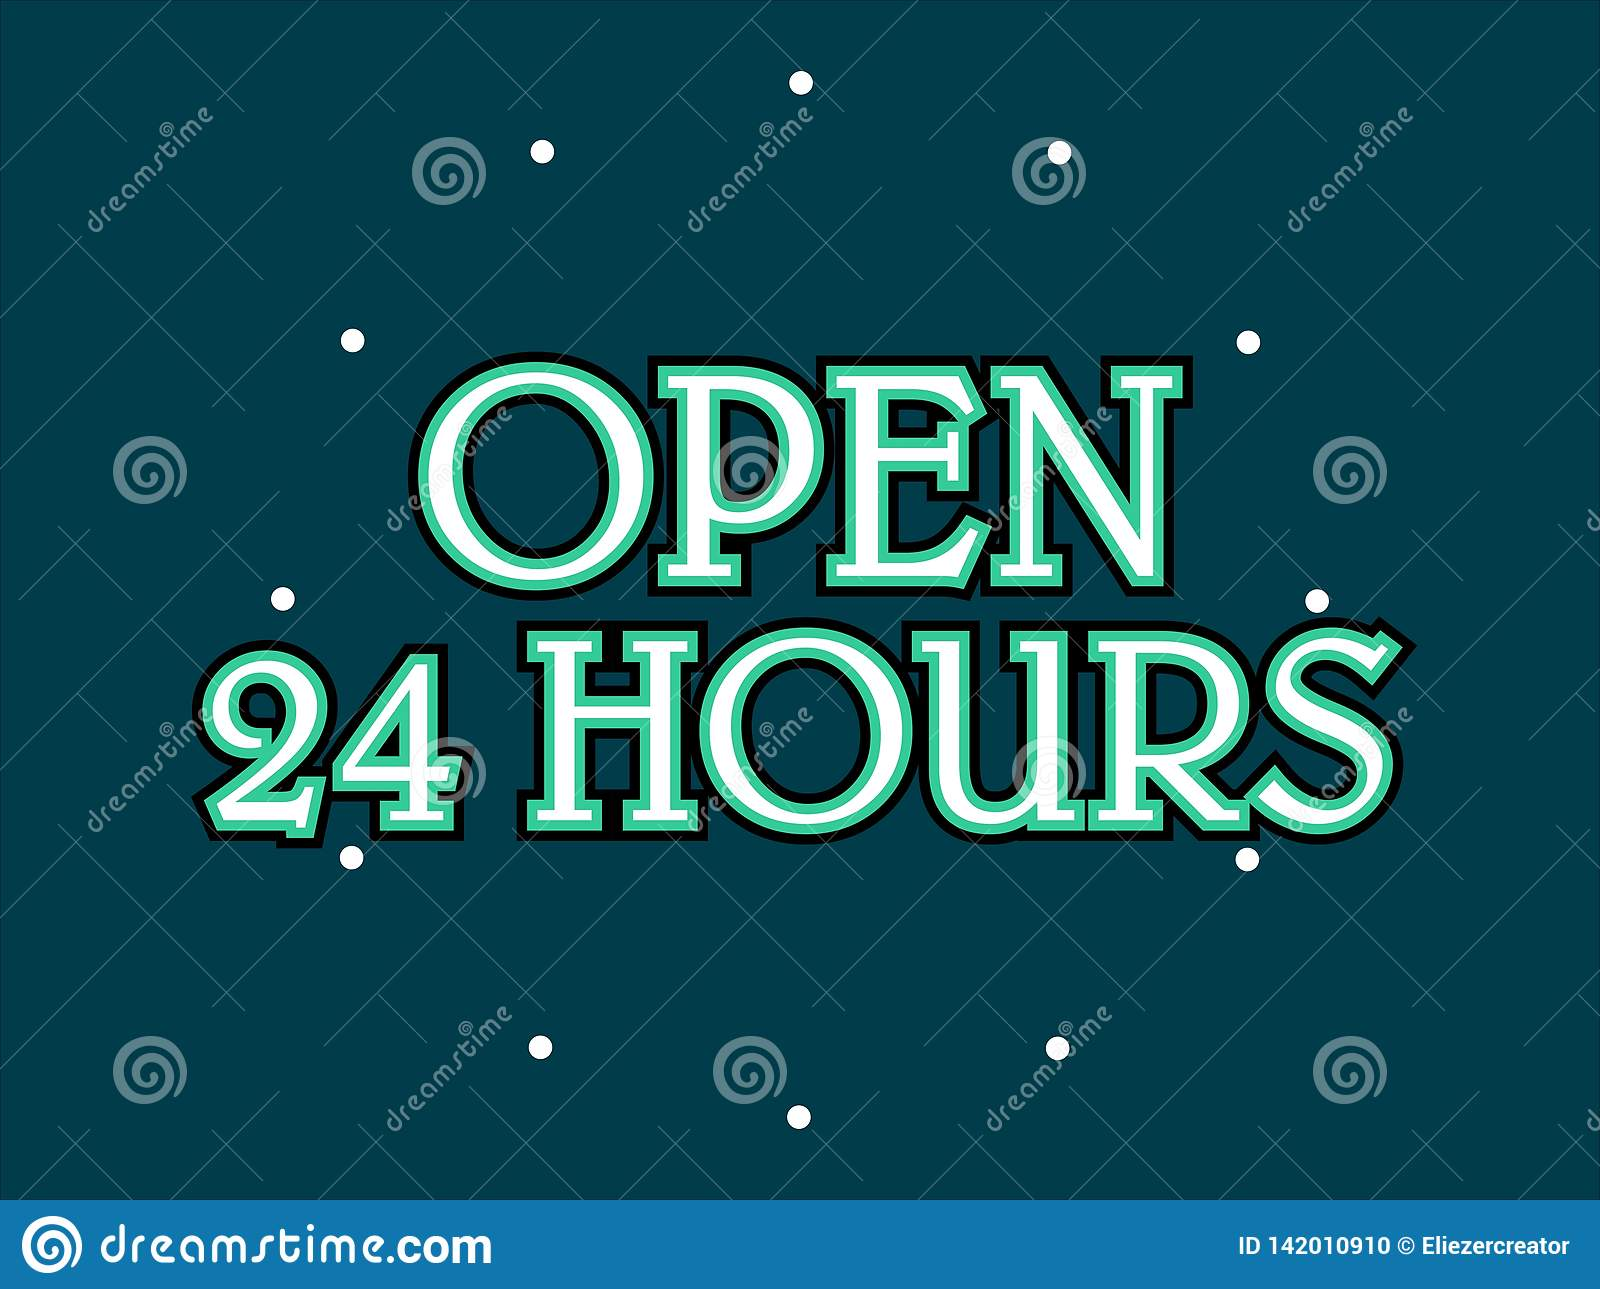 Open 24 hours stock vector